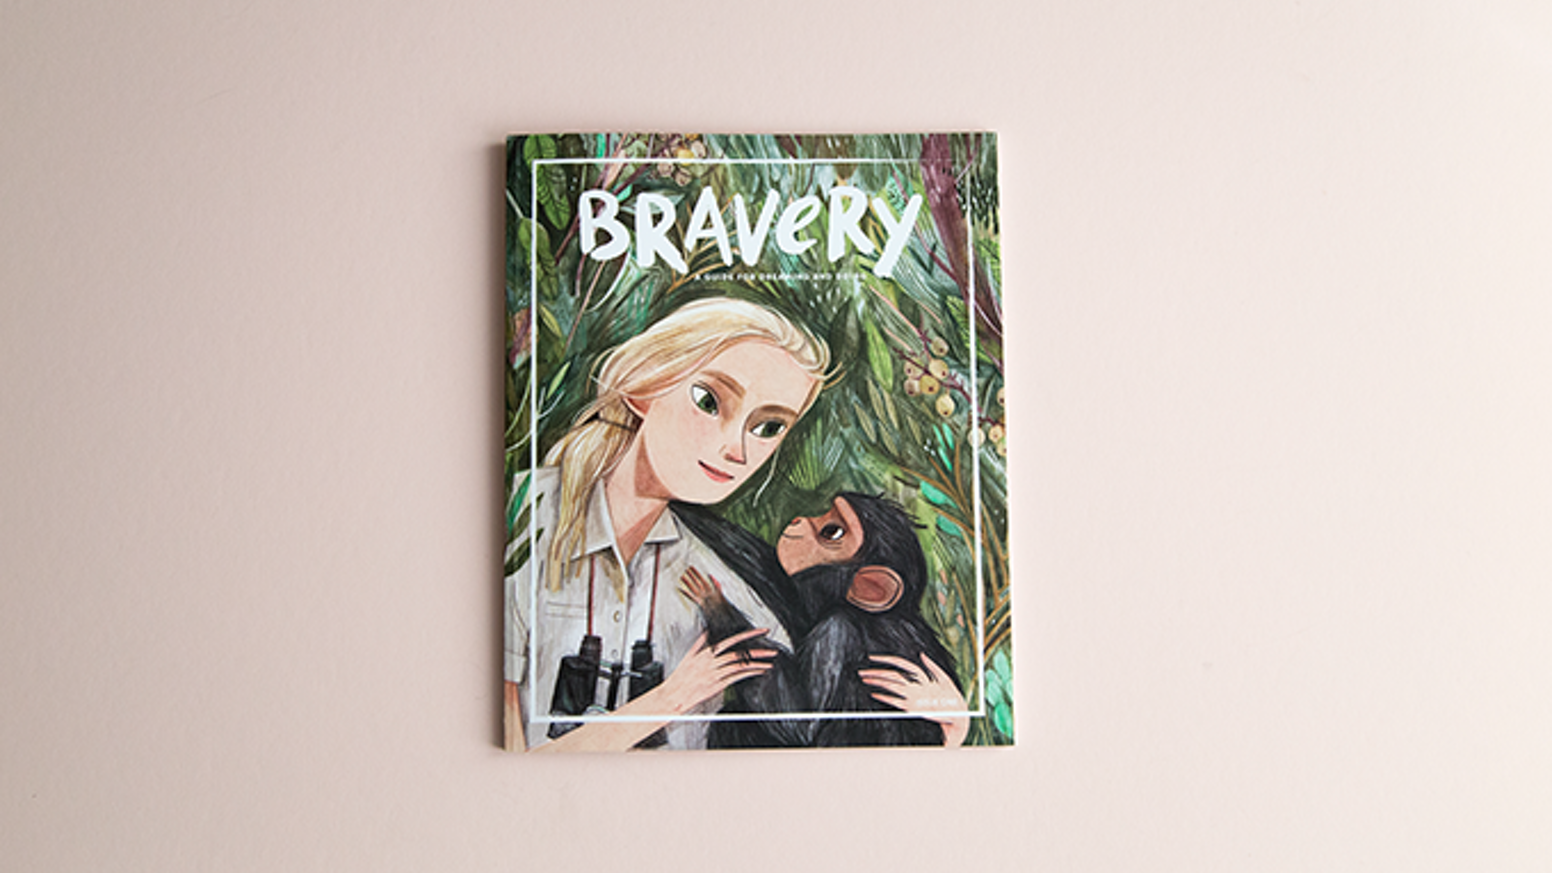 Bravery Magazine | An Empowering Publication for Kids by